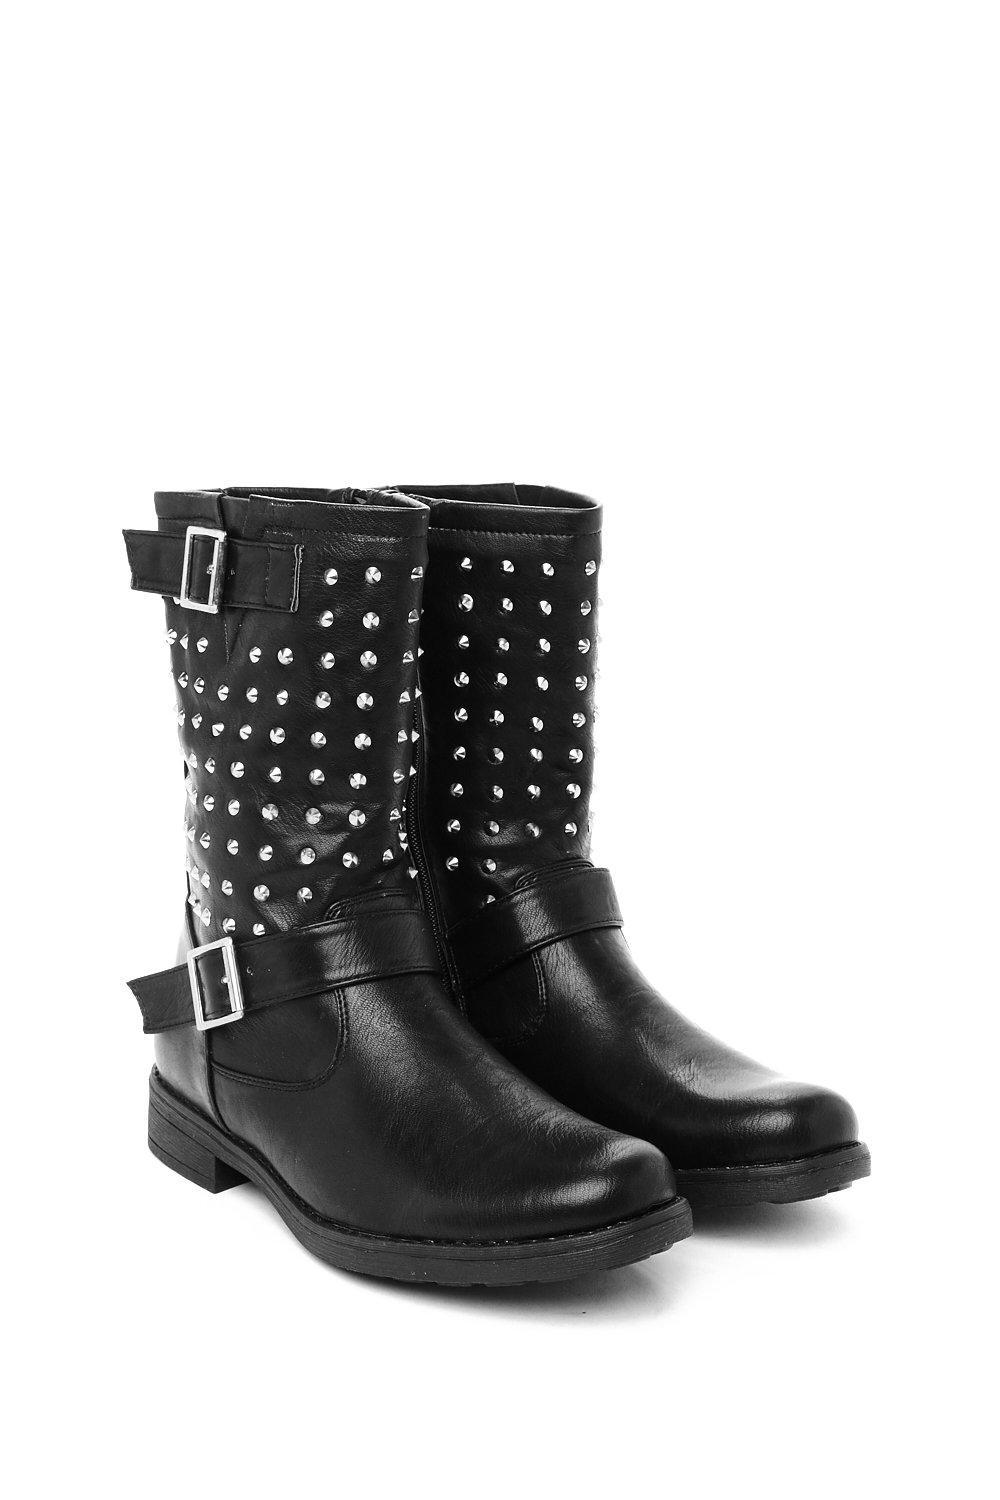 Nasty Gal Leather Killa Boots Man Studded Biker Boots Killa Boots Man Studded Biker Boots in Black